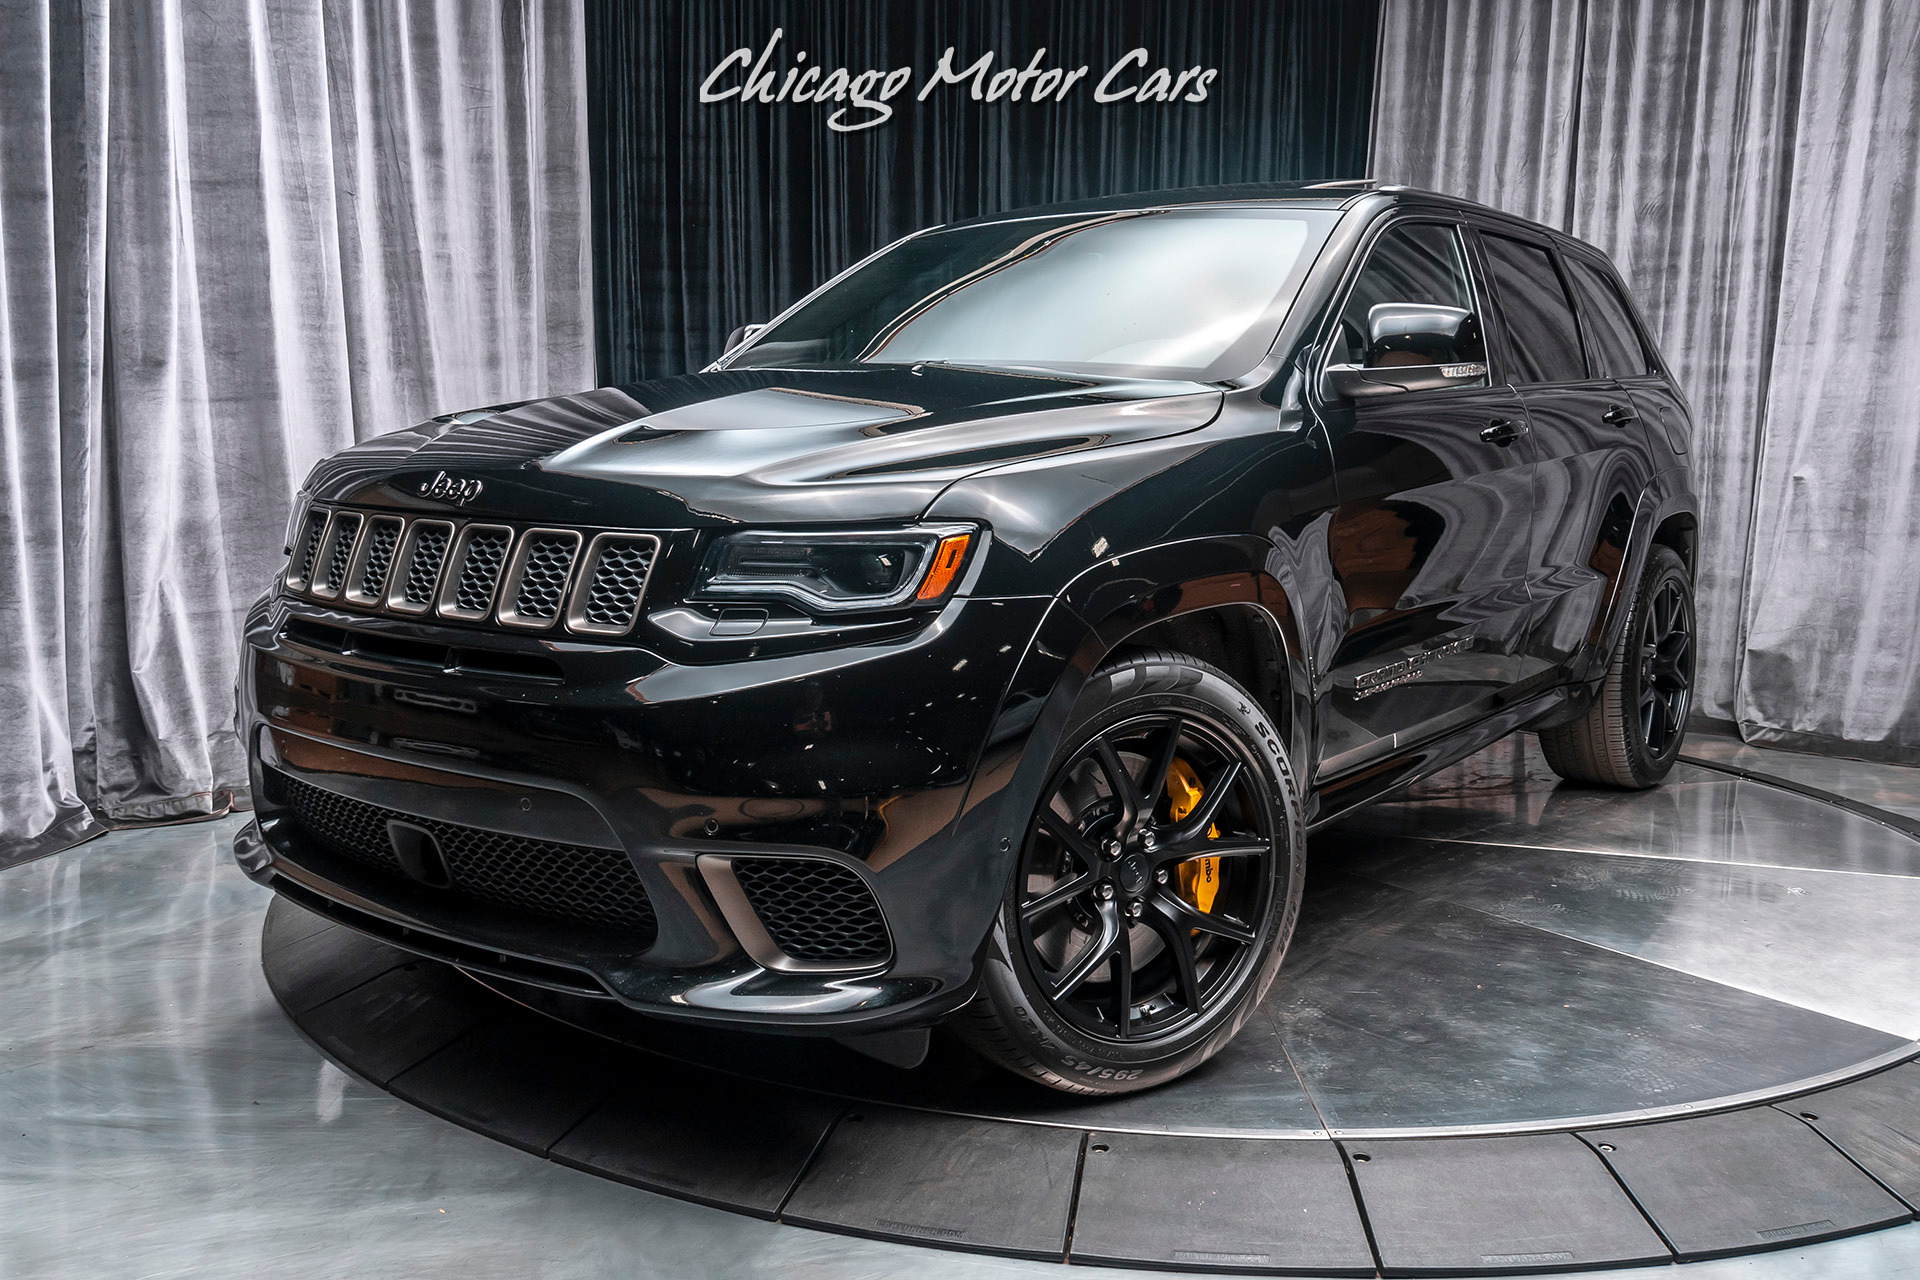 Used 2018 Jeep Grand Cherokee Trackhawk Awd Suv Msrp 98k Signature Wrapped Interior Pkg For Sale Special Pricing Chicago Motor Cars Stock 16416